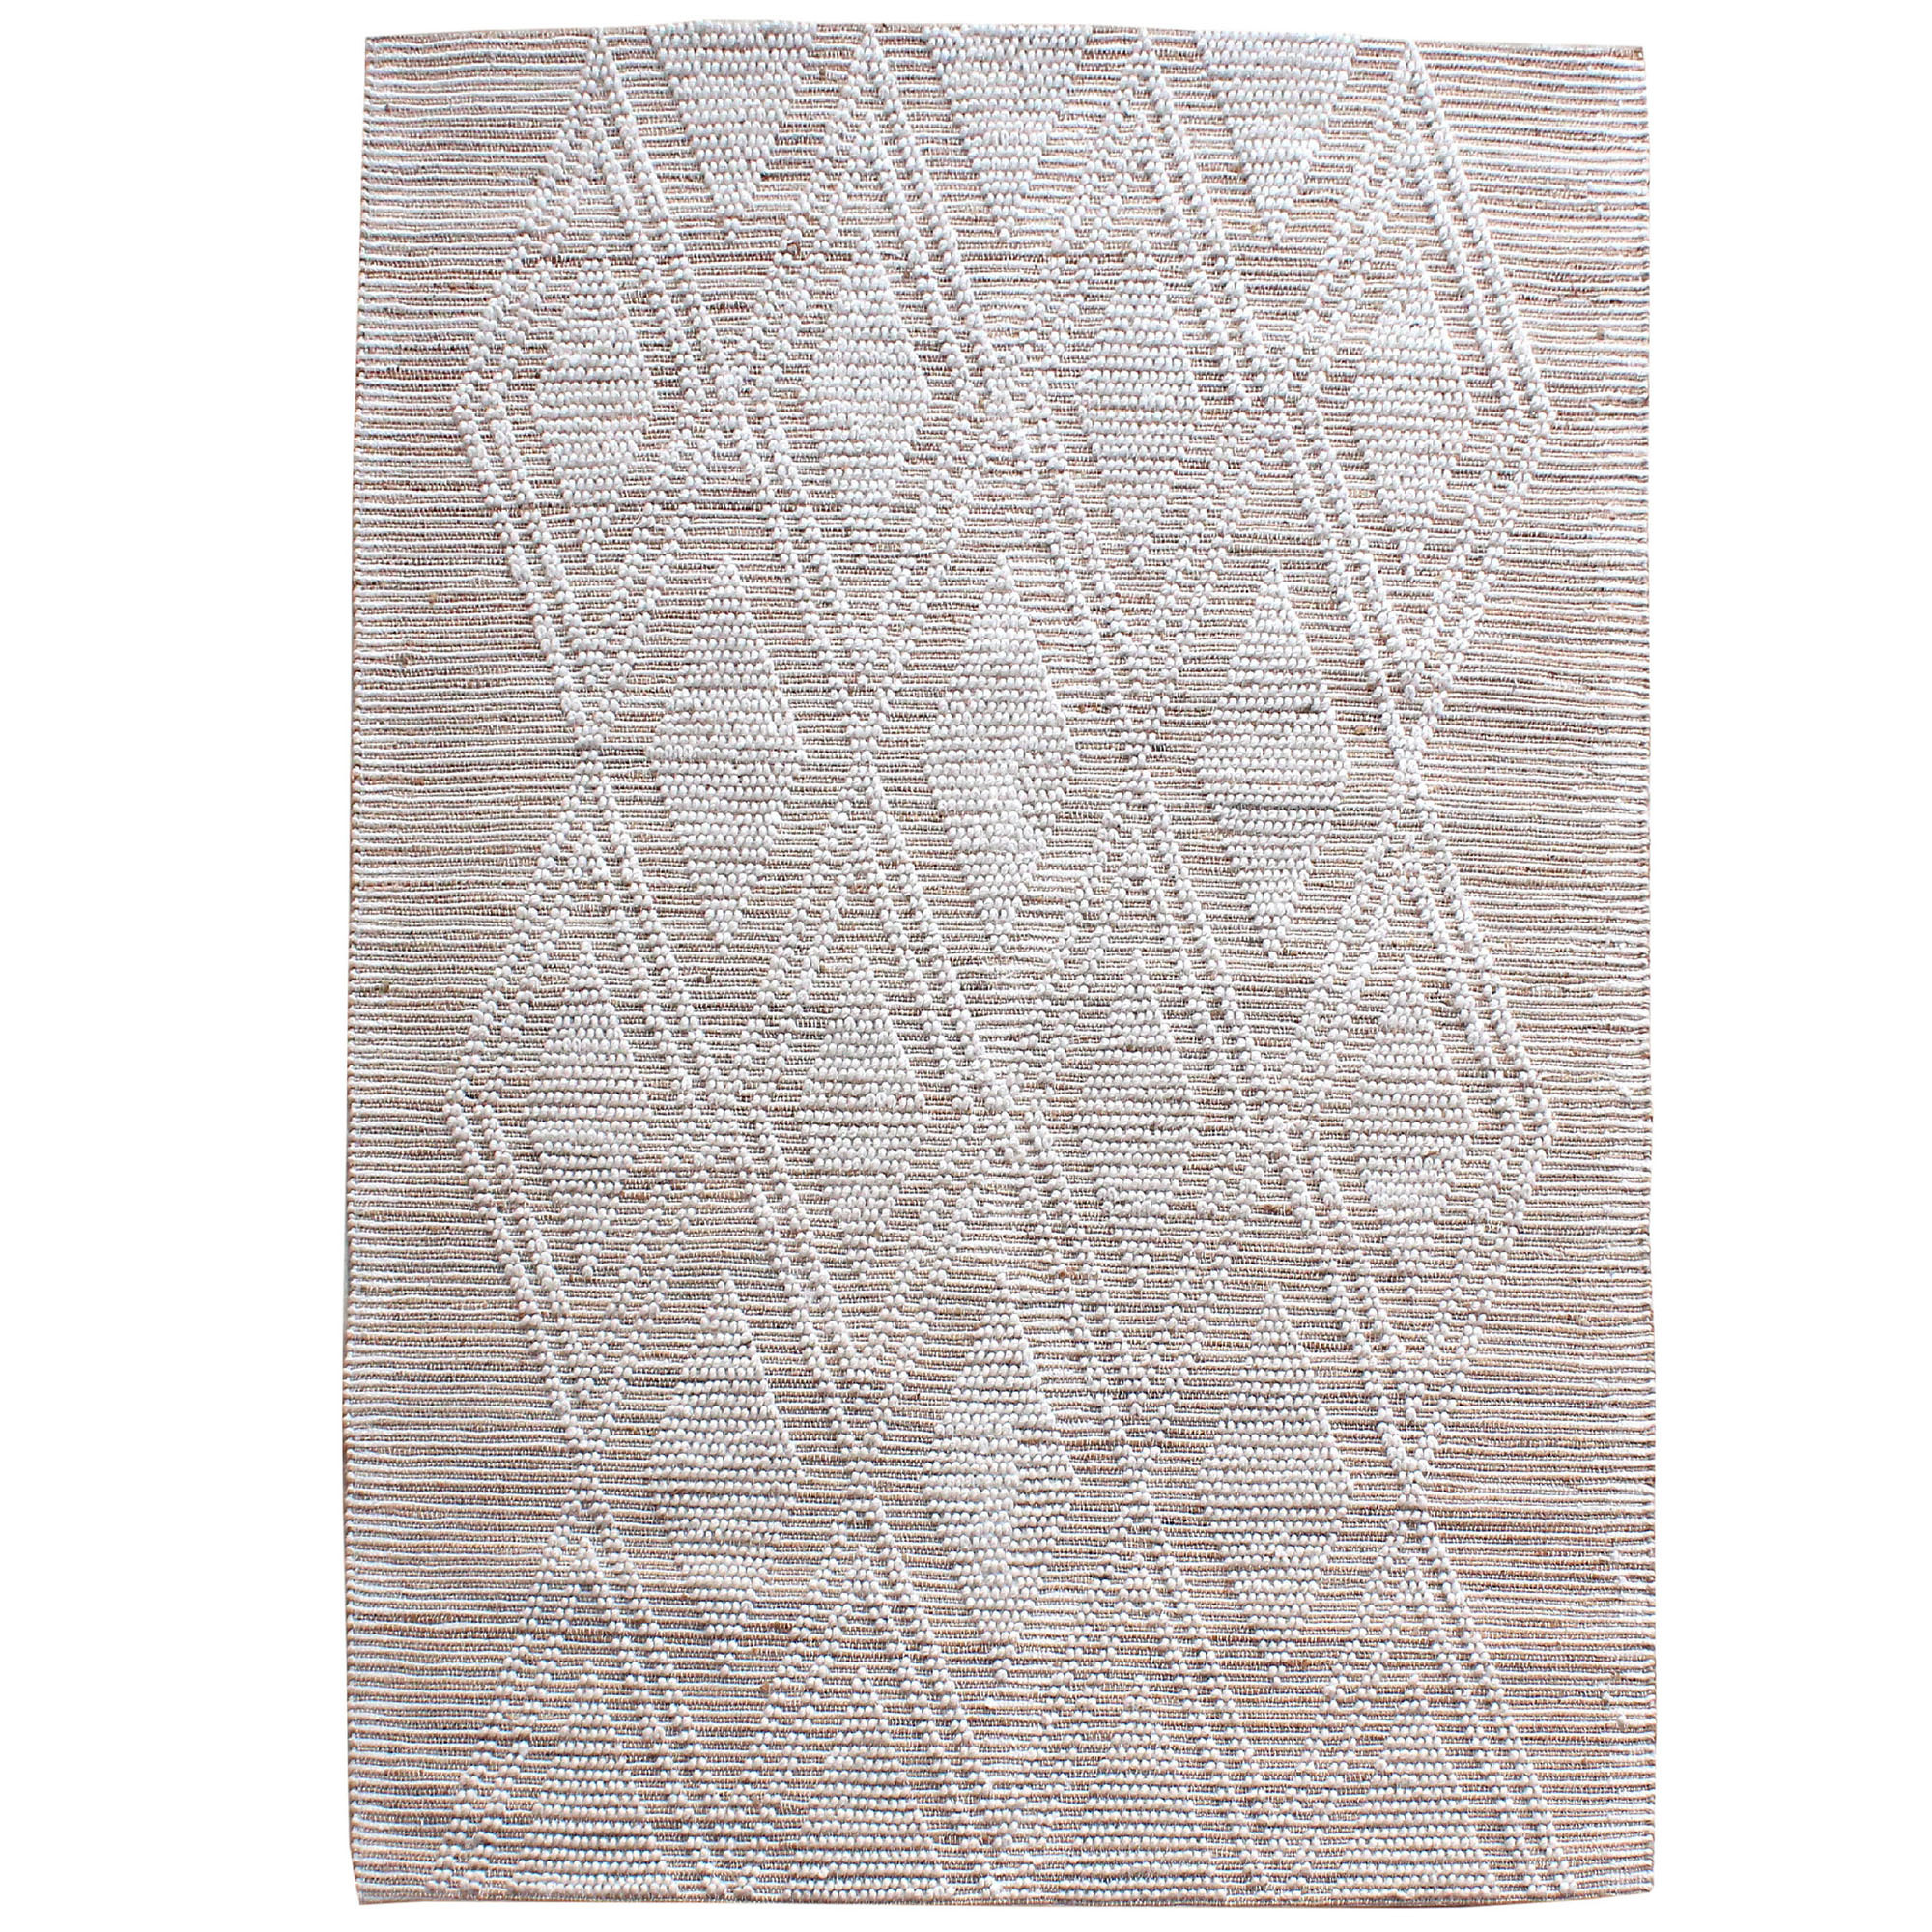 Temple Webster Sol Hand Woven Hemp Wool Rug